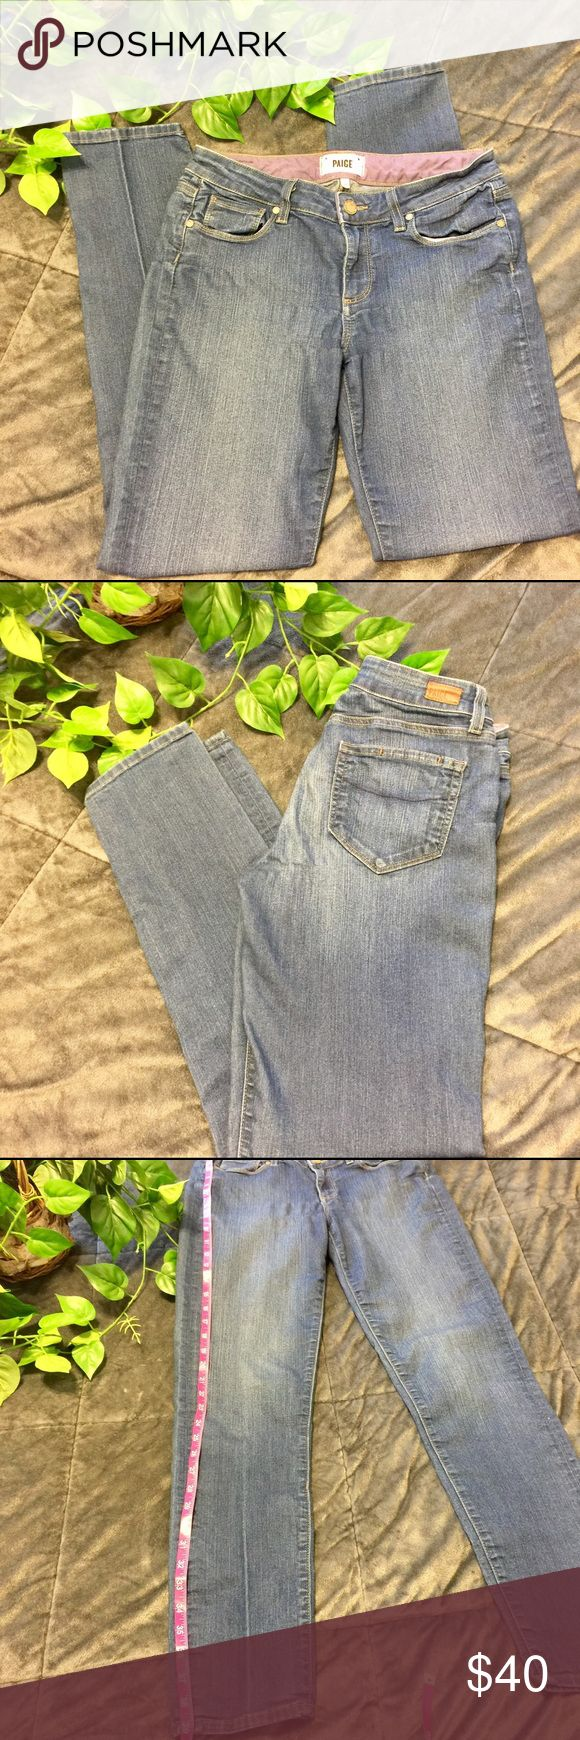 "🌷SALE🌷Paige Skyline Skinny Ankle Distressed Crop Distressed Denim And Super Comfortable!!! Skyline Skinny Ankle Jeans. Excellent Condition!! Size 28 Inseam Approx 31"" Paige Jeans Jeans Skinny"